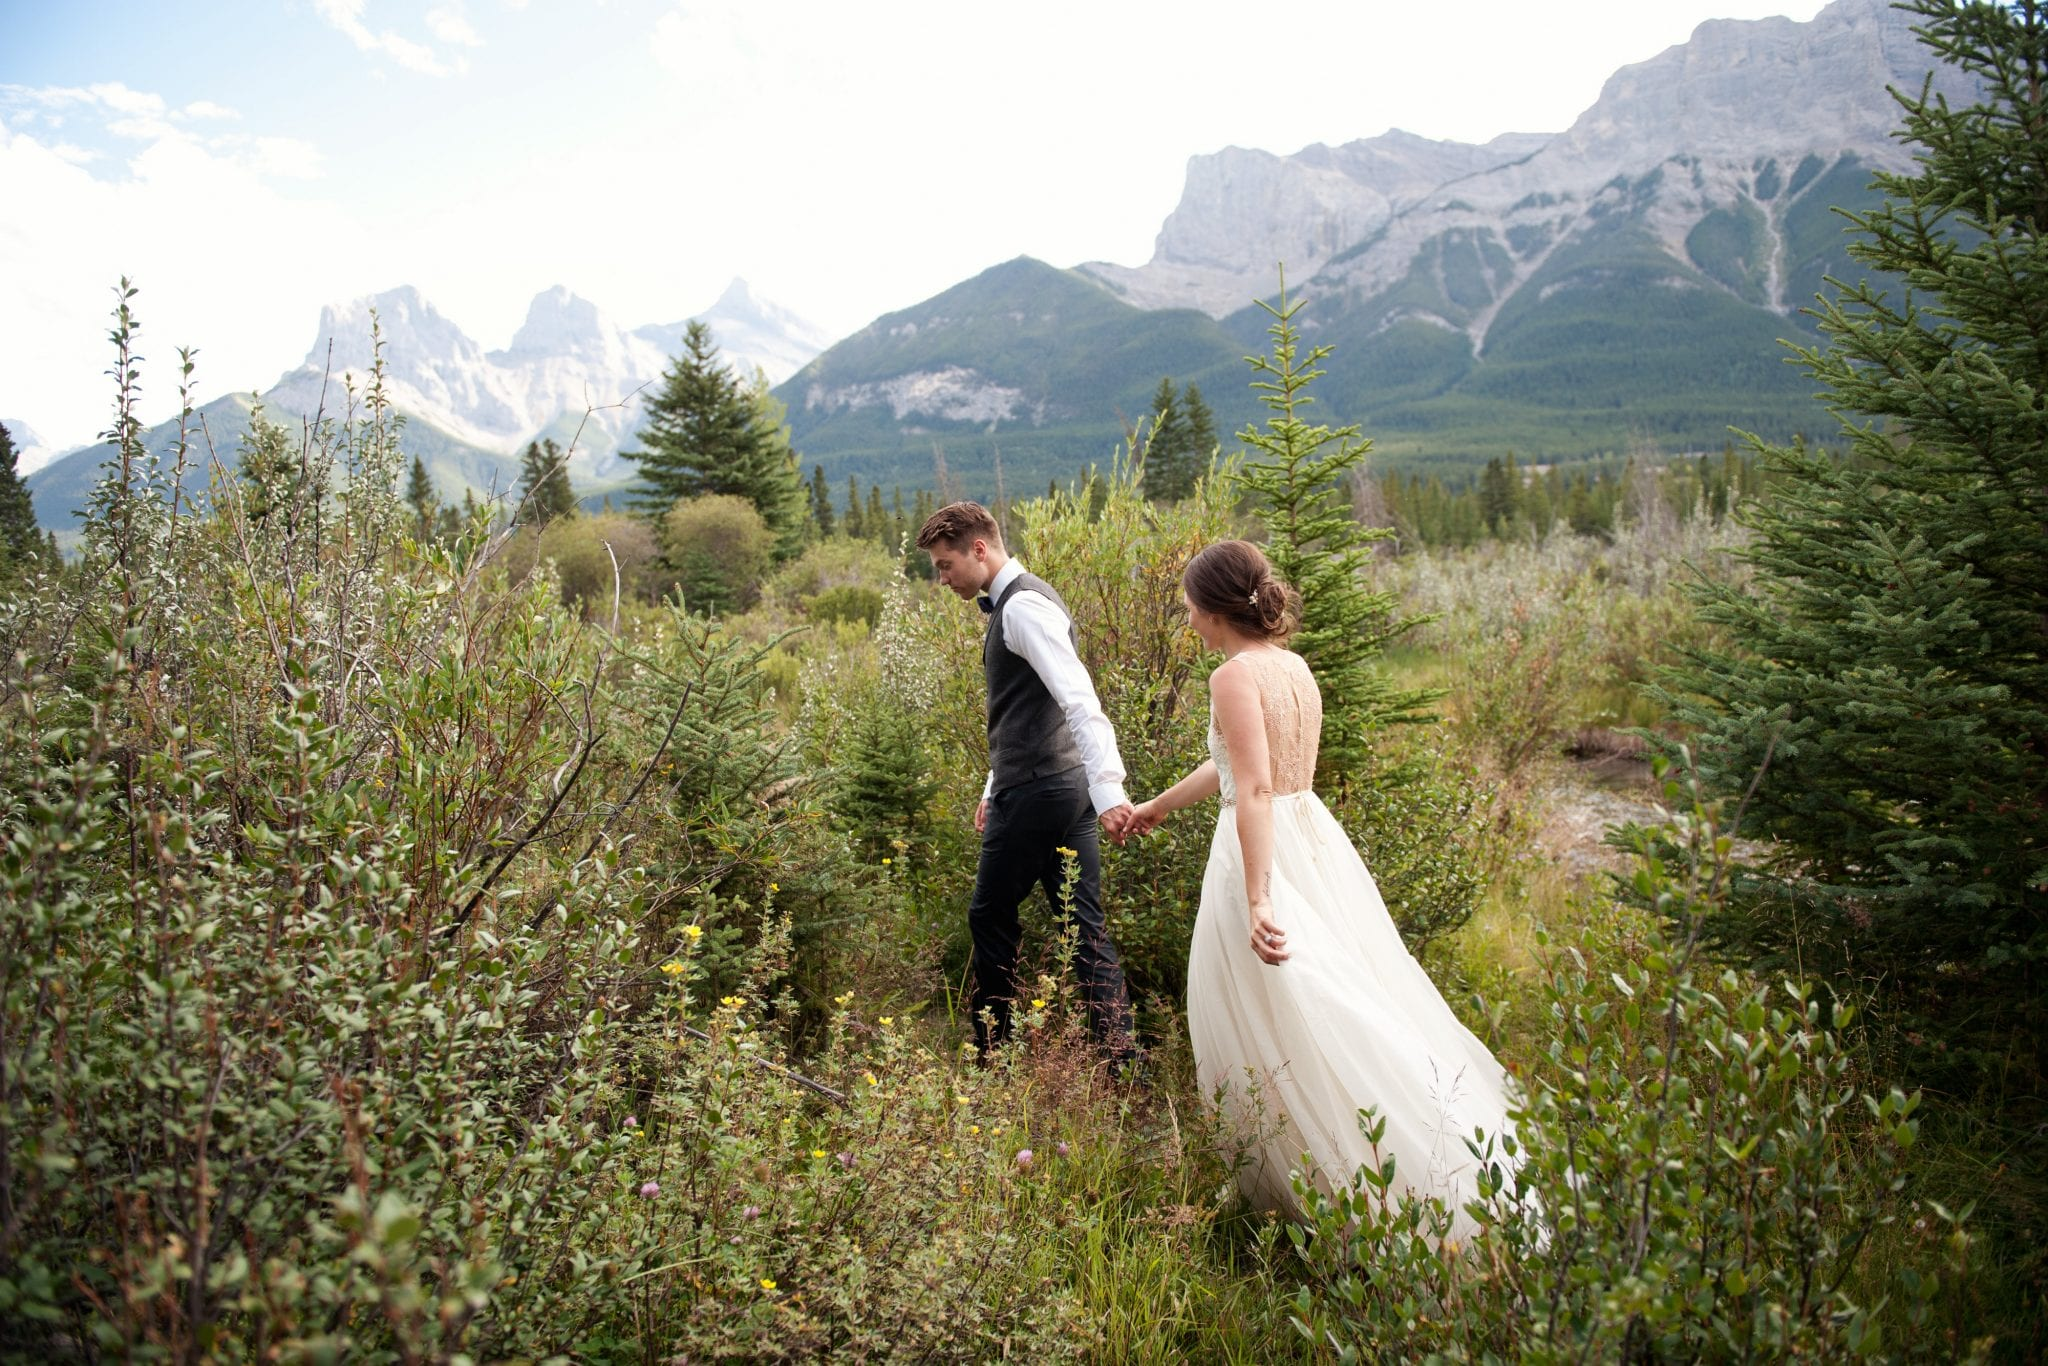 Walk in the mountains - Photo credit Tara Whittaker Photography